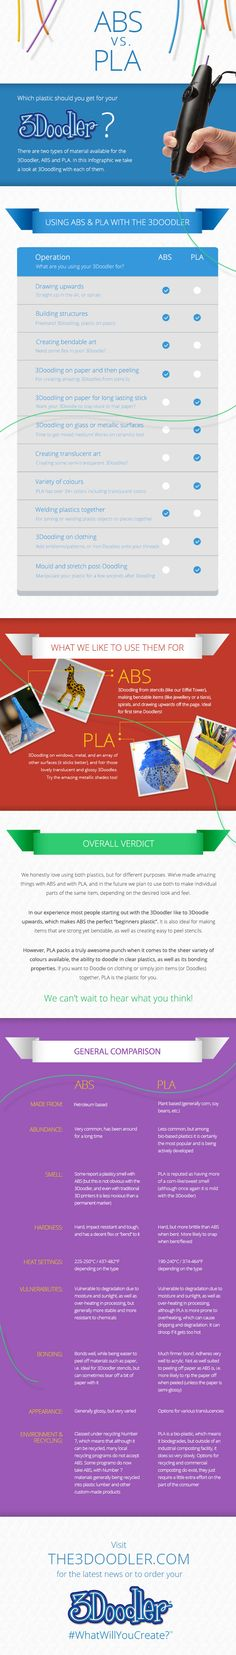 ABS Vs PLA Infographic Part 2. One of the most frequent questions we get from our community is whether it's best to Doodle in ABS or PLA plastic.